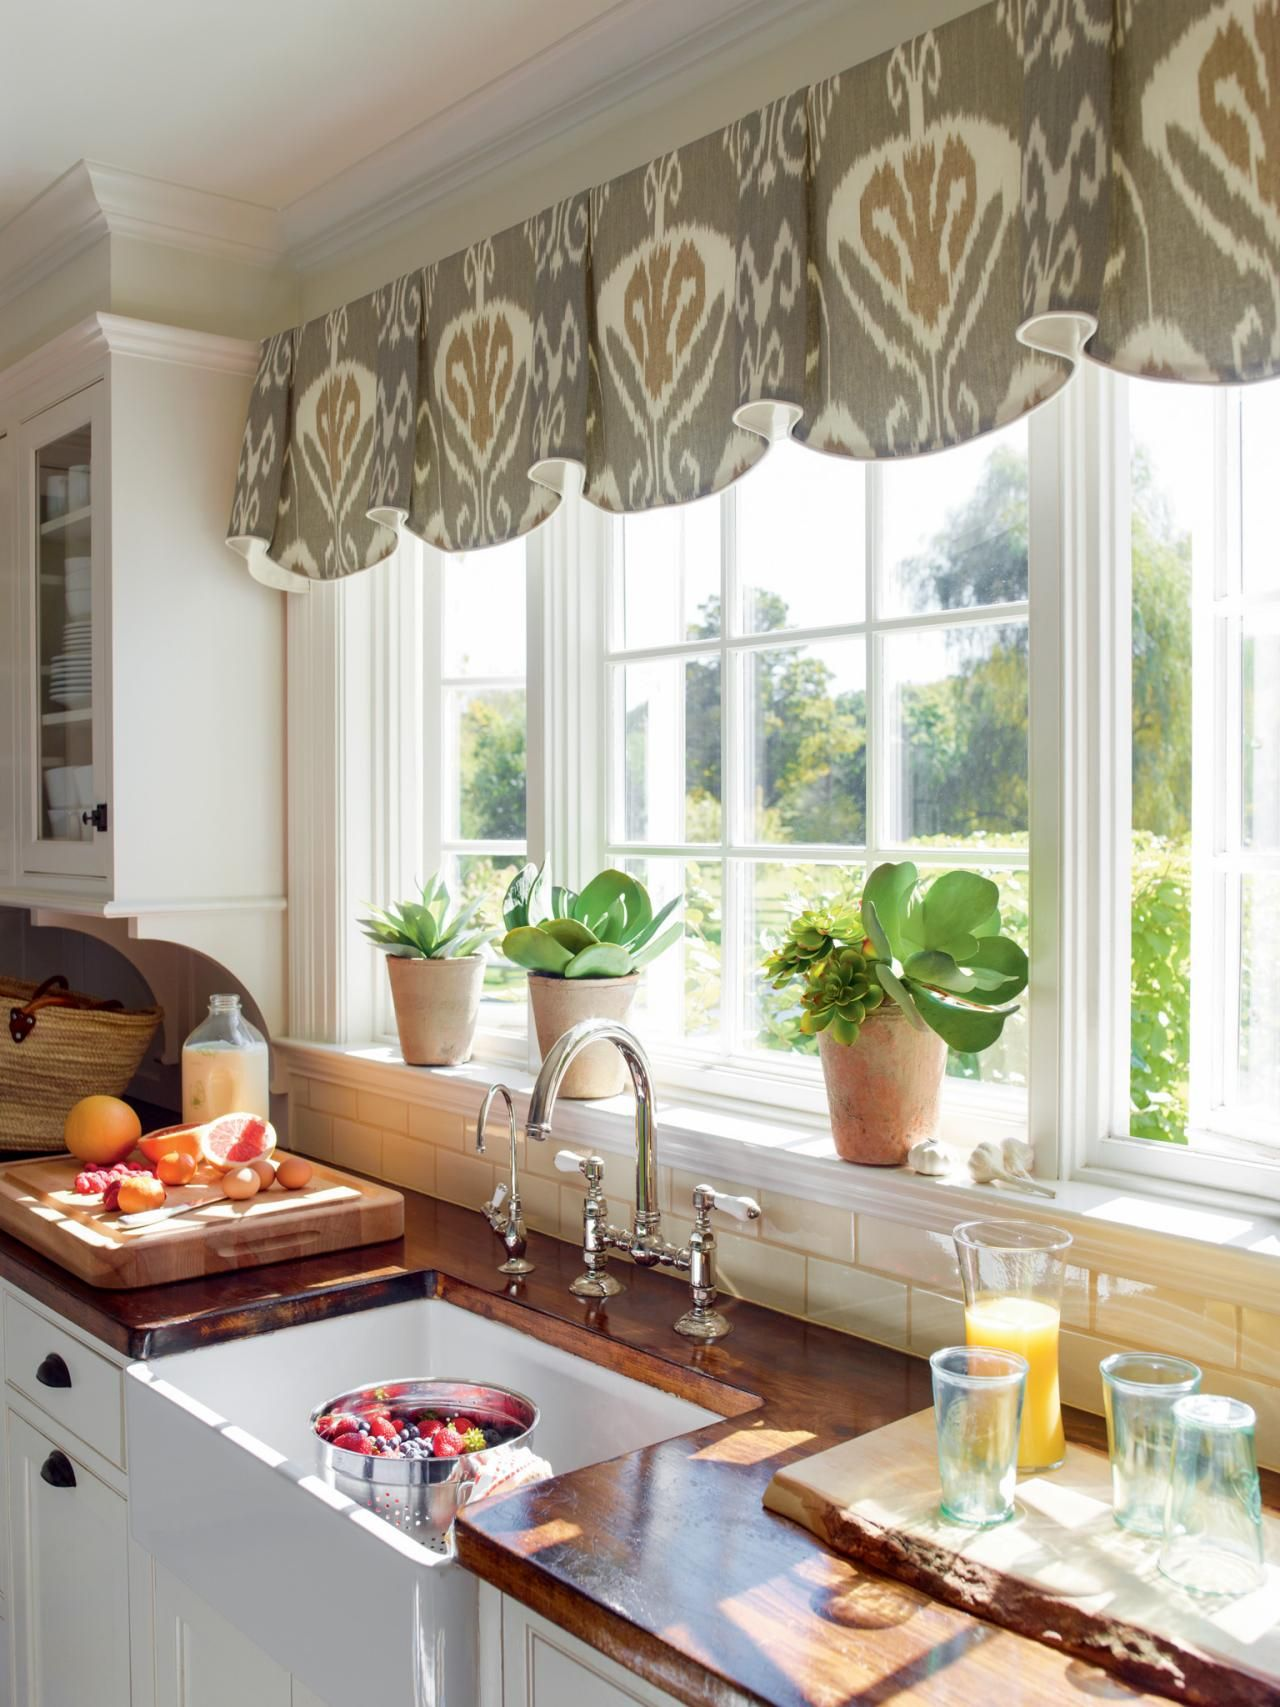 Unique window covering ideas that use everyday materials in ...